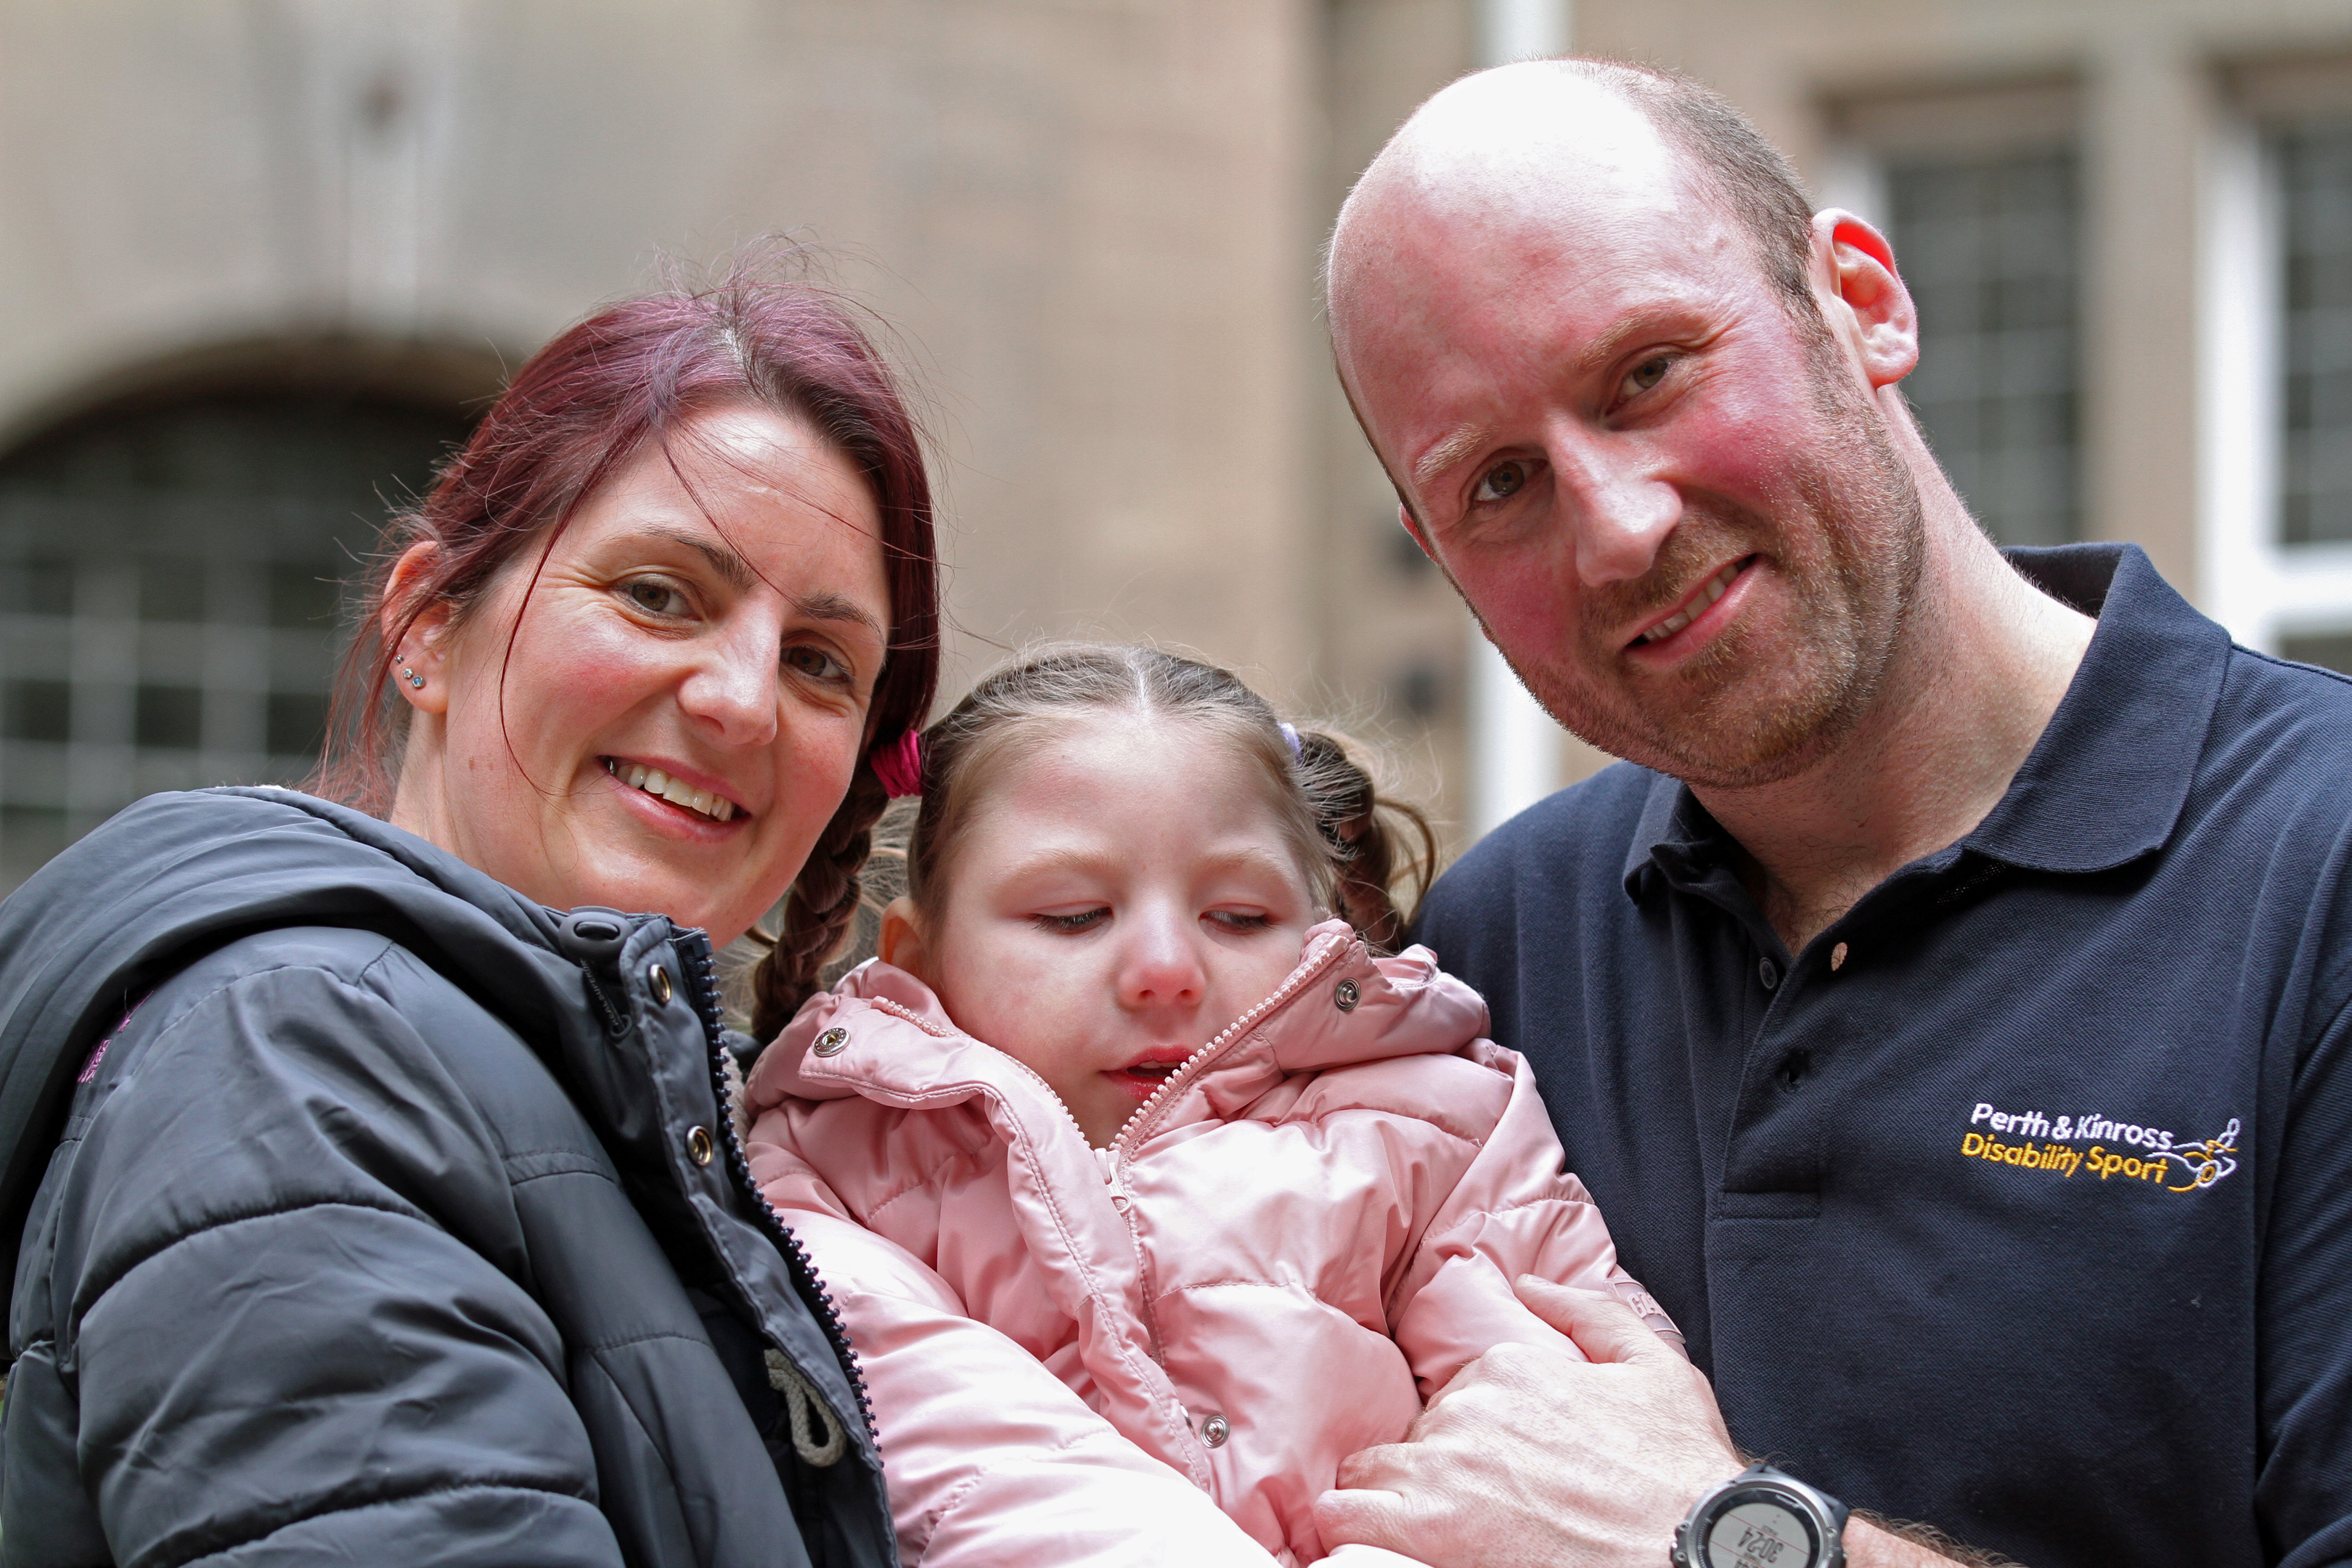 Stuart is running the London Marathon to raise money for his four-year-old neice